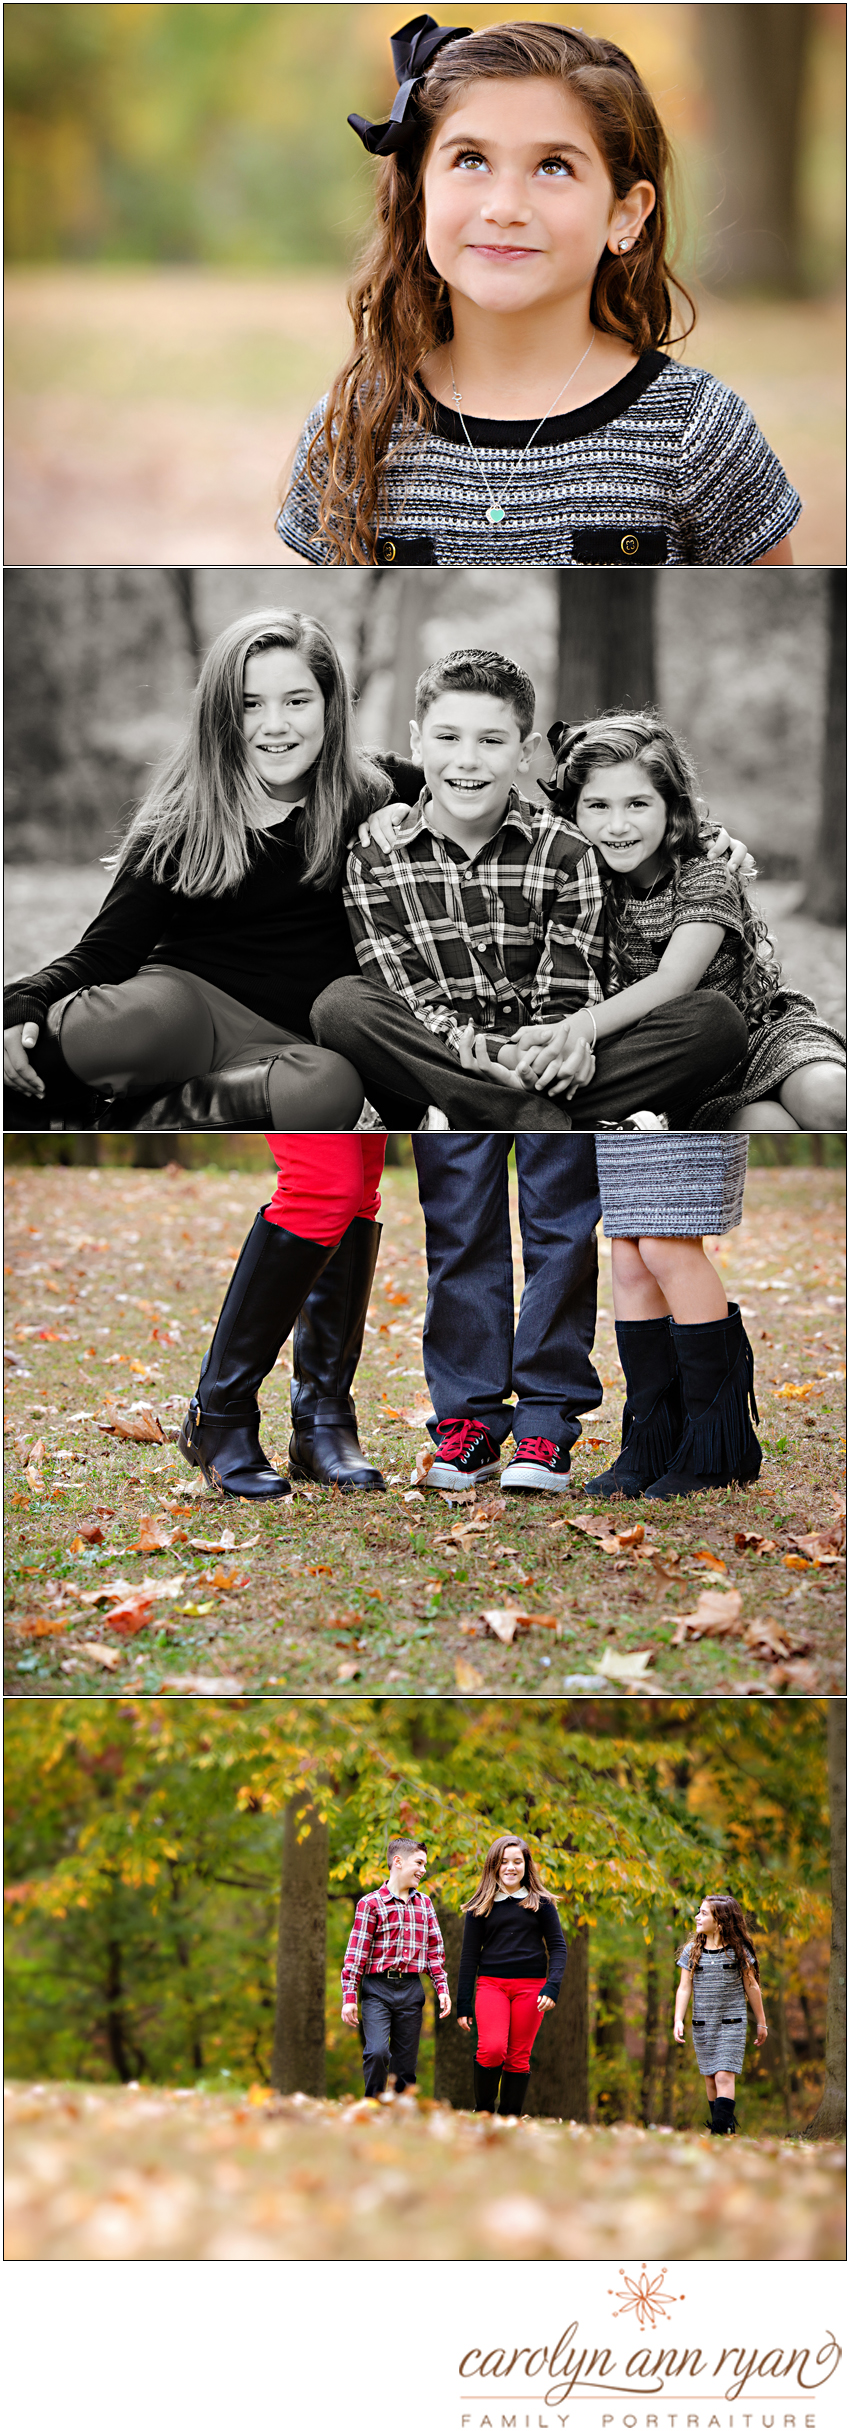 Child and Family portraits by Carolyn Ann Ryan Photograhy in Northern NJ and North Carolina